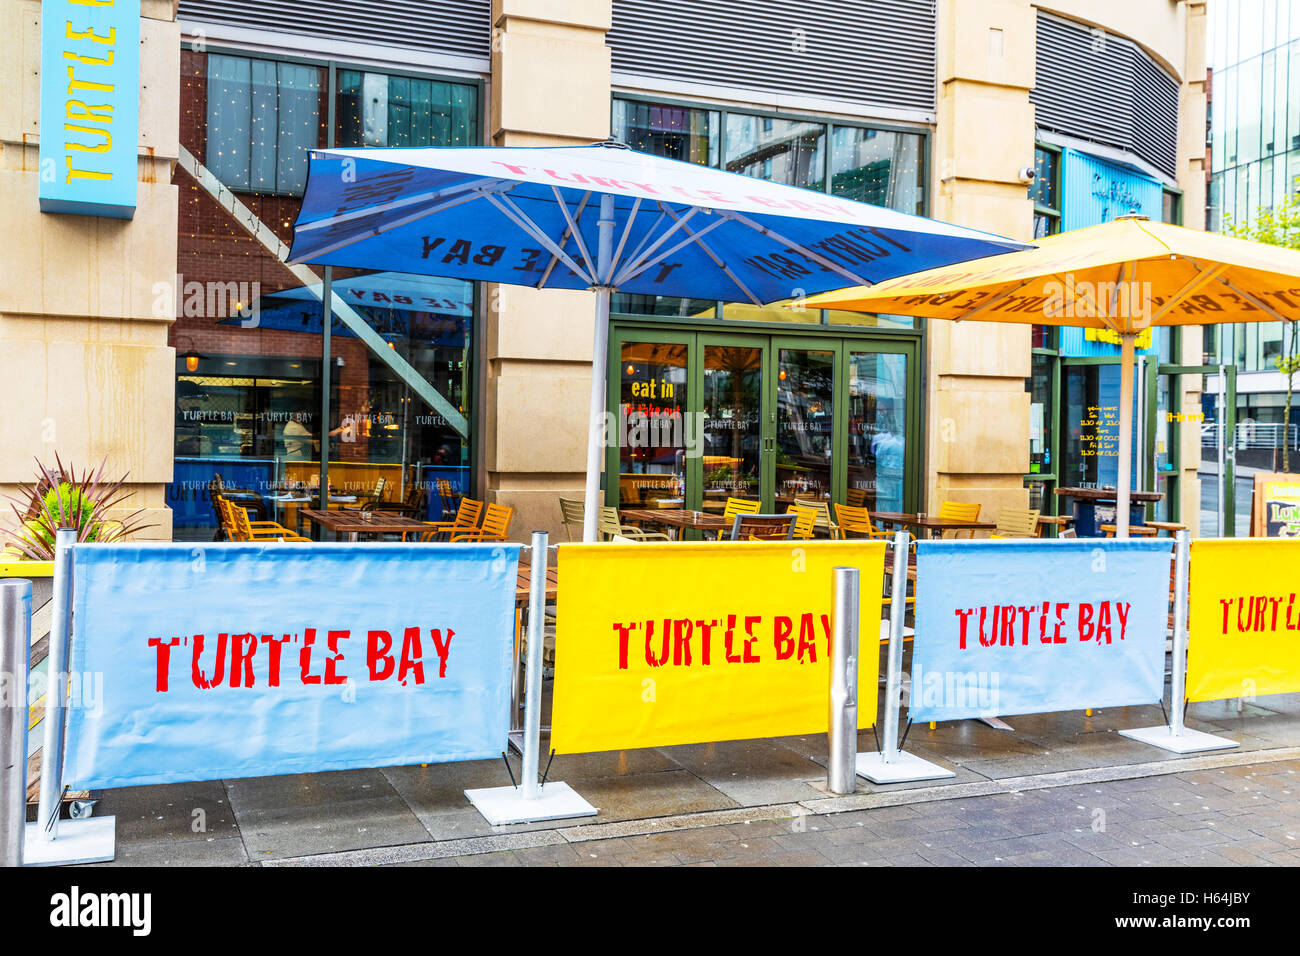 Turtle bay restaurant Caribbean diner chain Nottingham City UK GB England sign signs building restaurants exterior - Stock Image